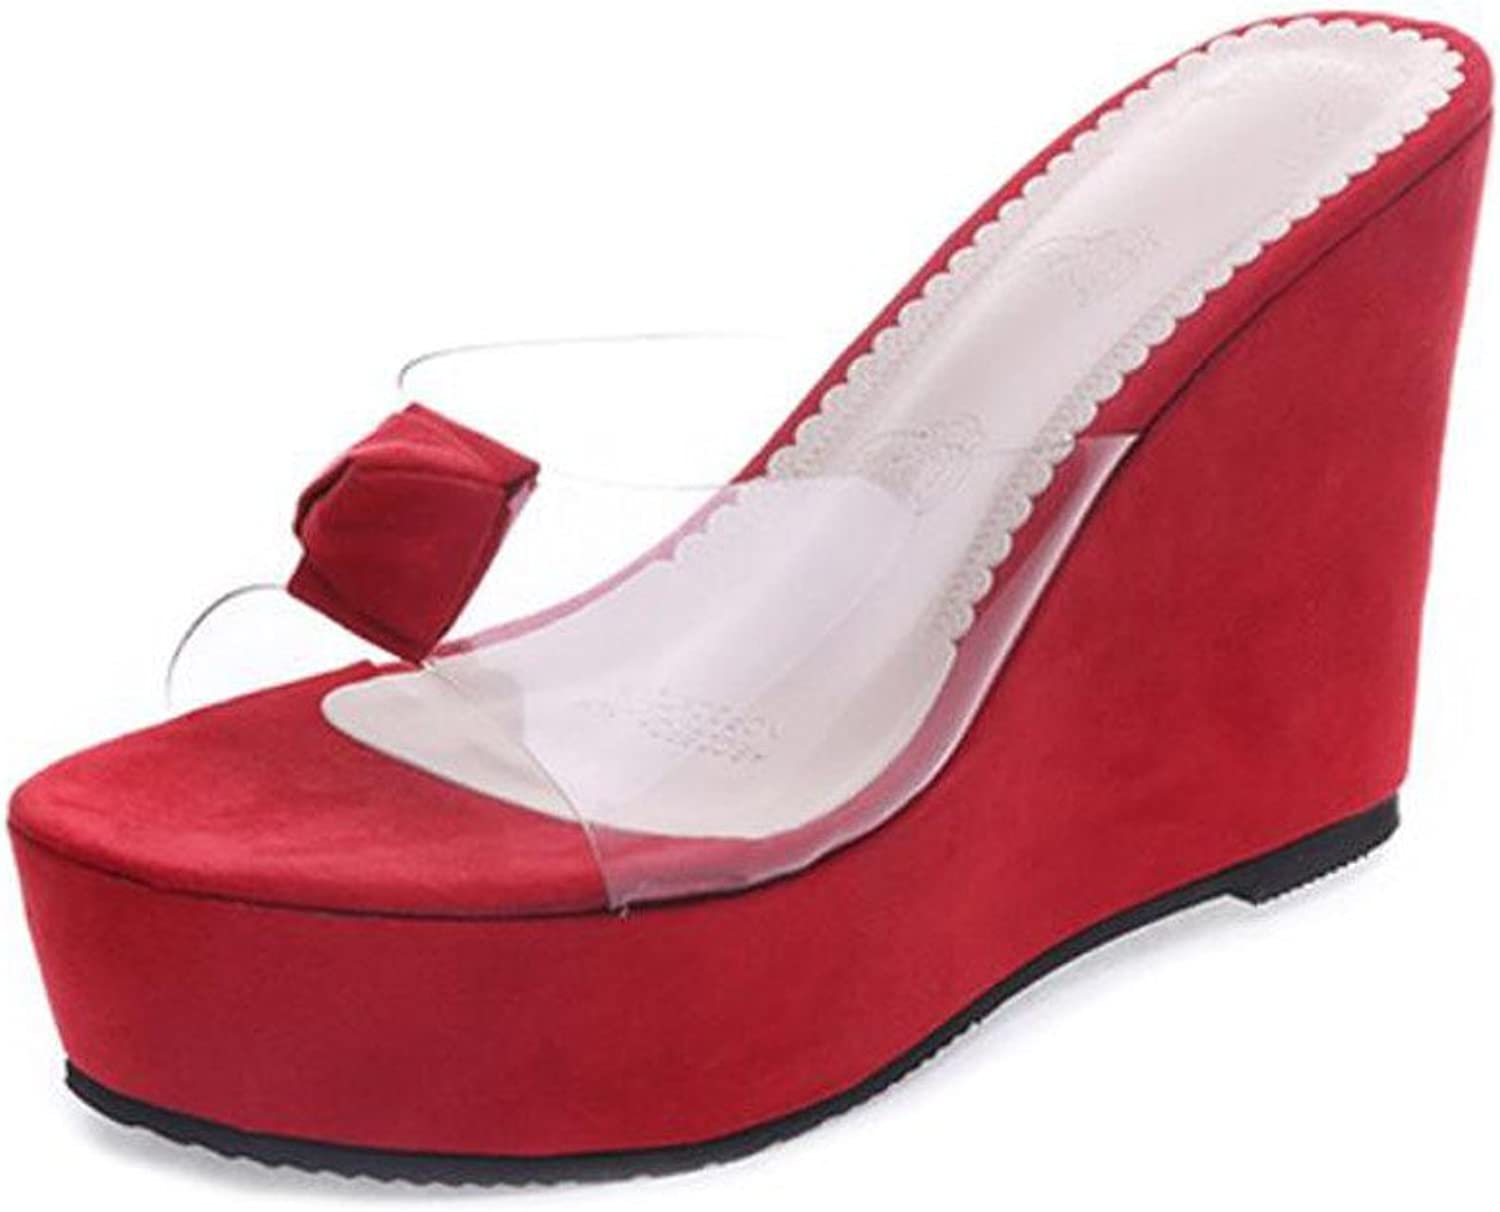 Ladies Transparent Wedge Heels Slippers Women's Simple Glass Crystal Sandals (Black Pink Red) ( color   Red , Size   39 )